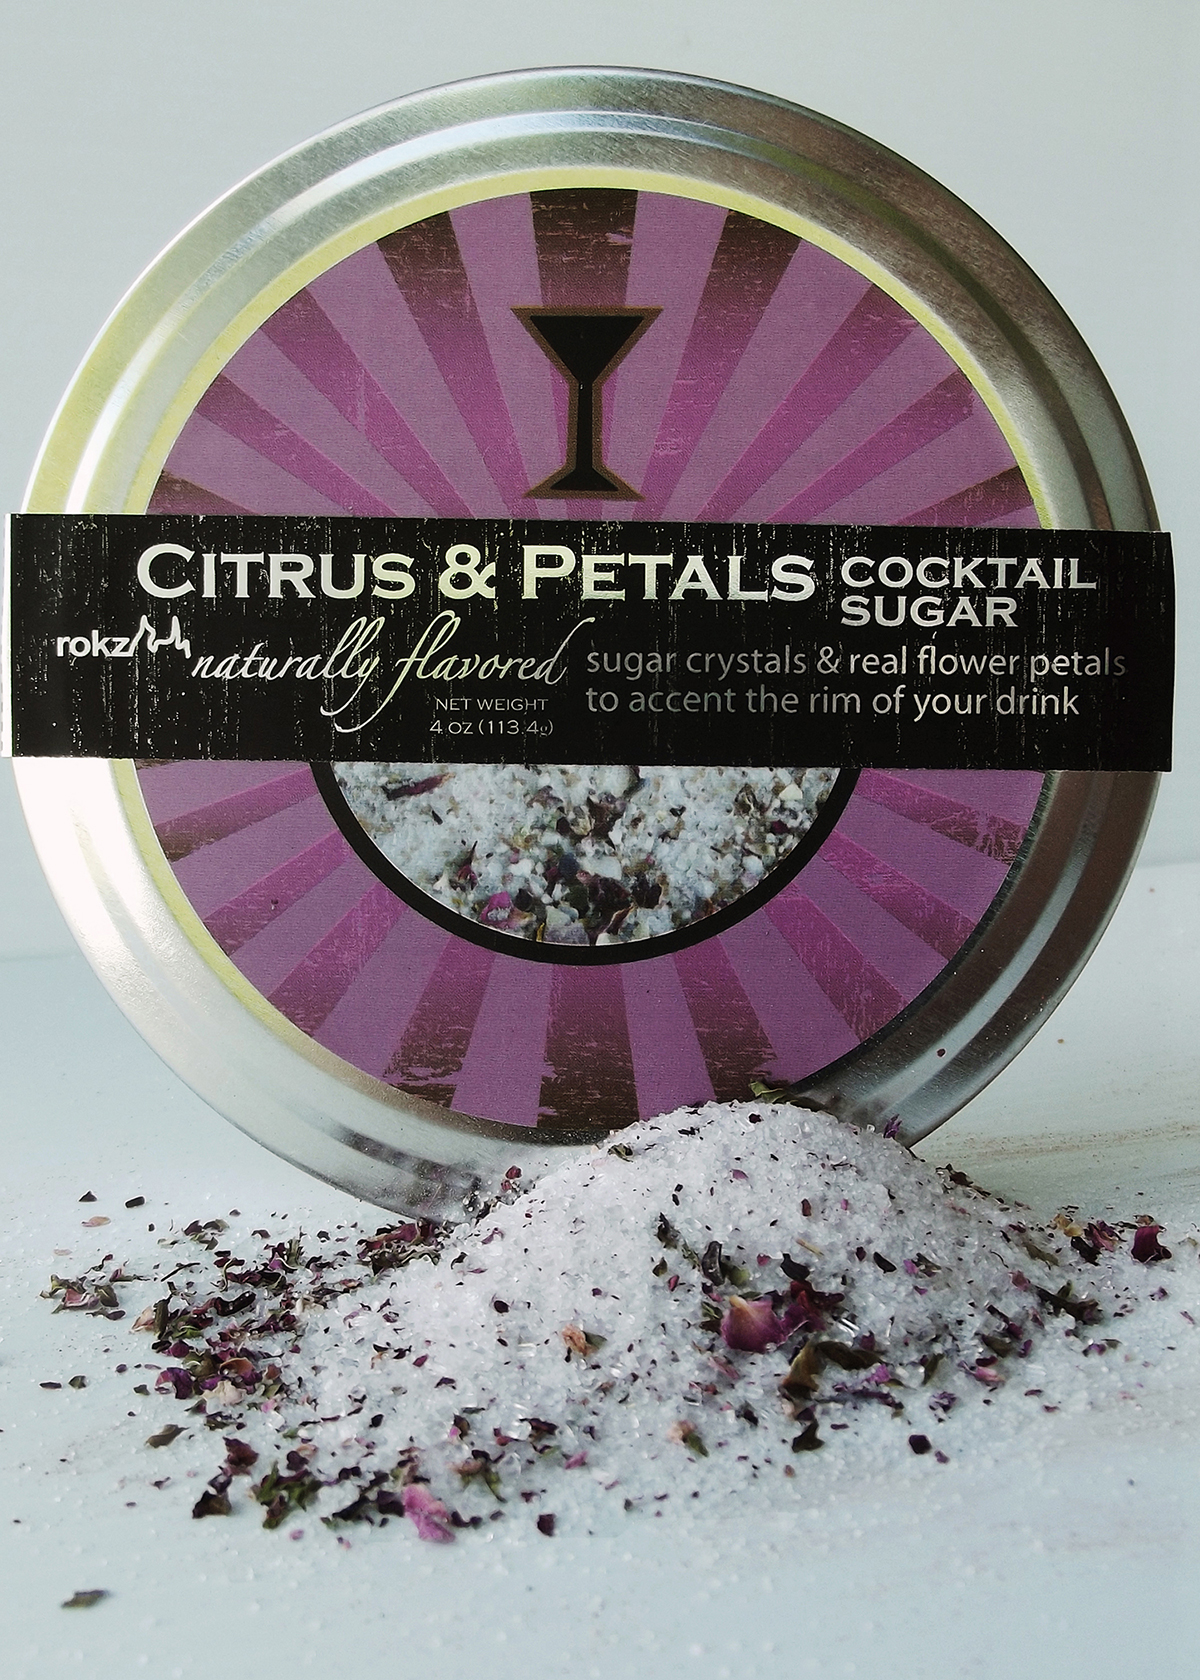 rokz Citrus Petals Cocktail Sugar